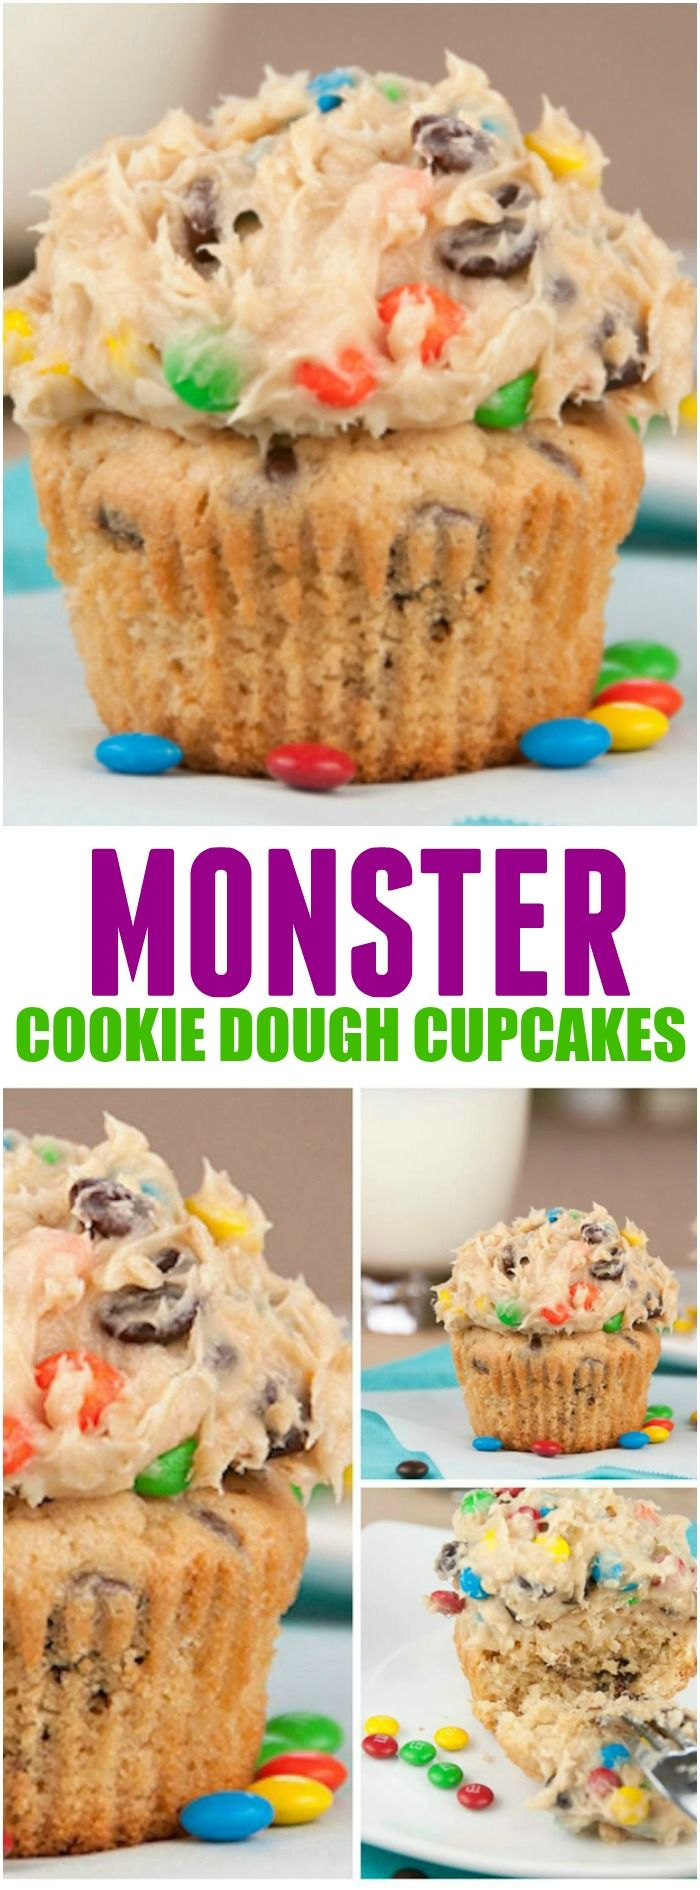 These Monster Cookie Dough Cupcakes from Wishes and Dishes are rich peanut butter cupcakes topped with a sweet and loaded cookie dough frosting that is packed full with peanut butter, chocolate chips and M&M candy! || Featured on www.thebestblogrecipes.com